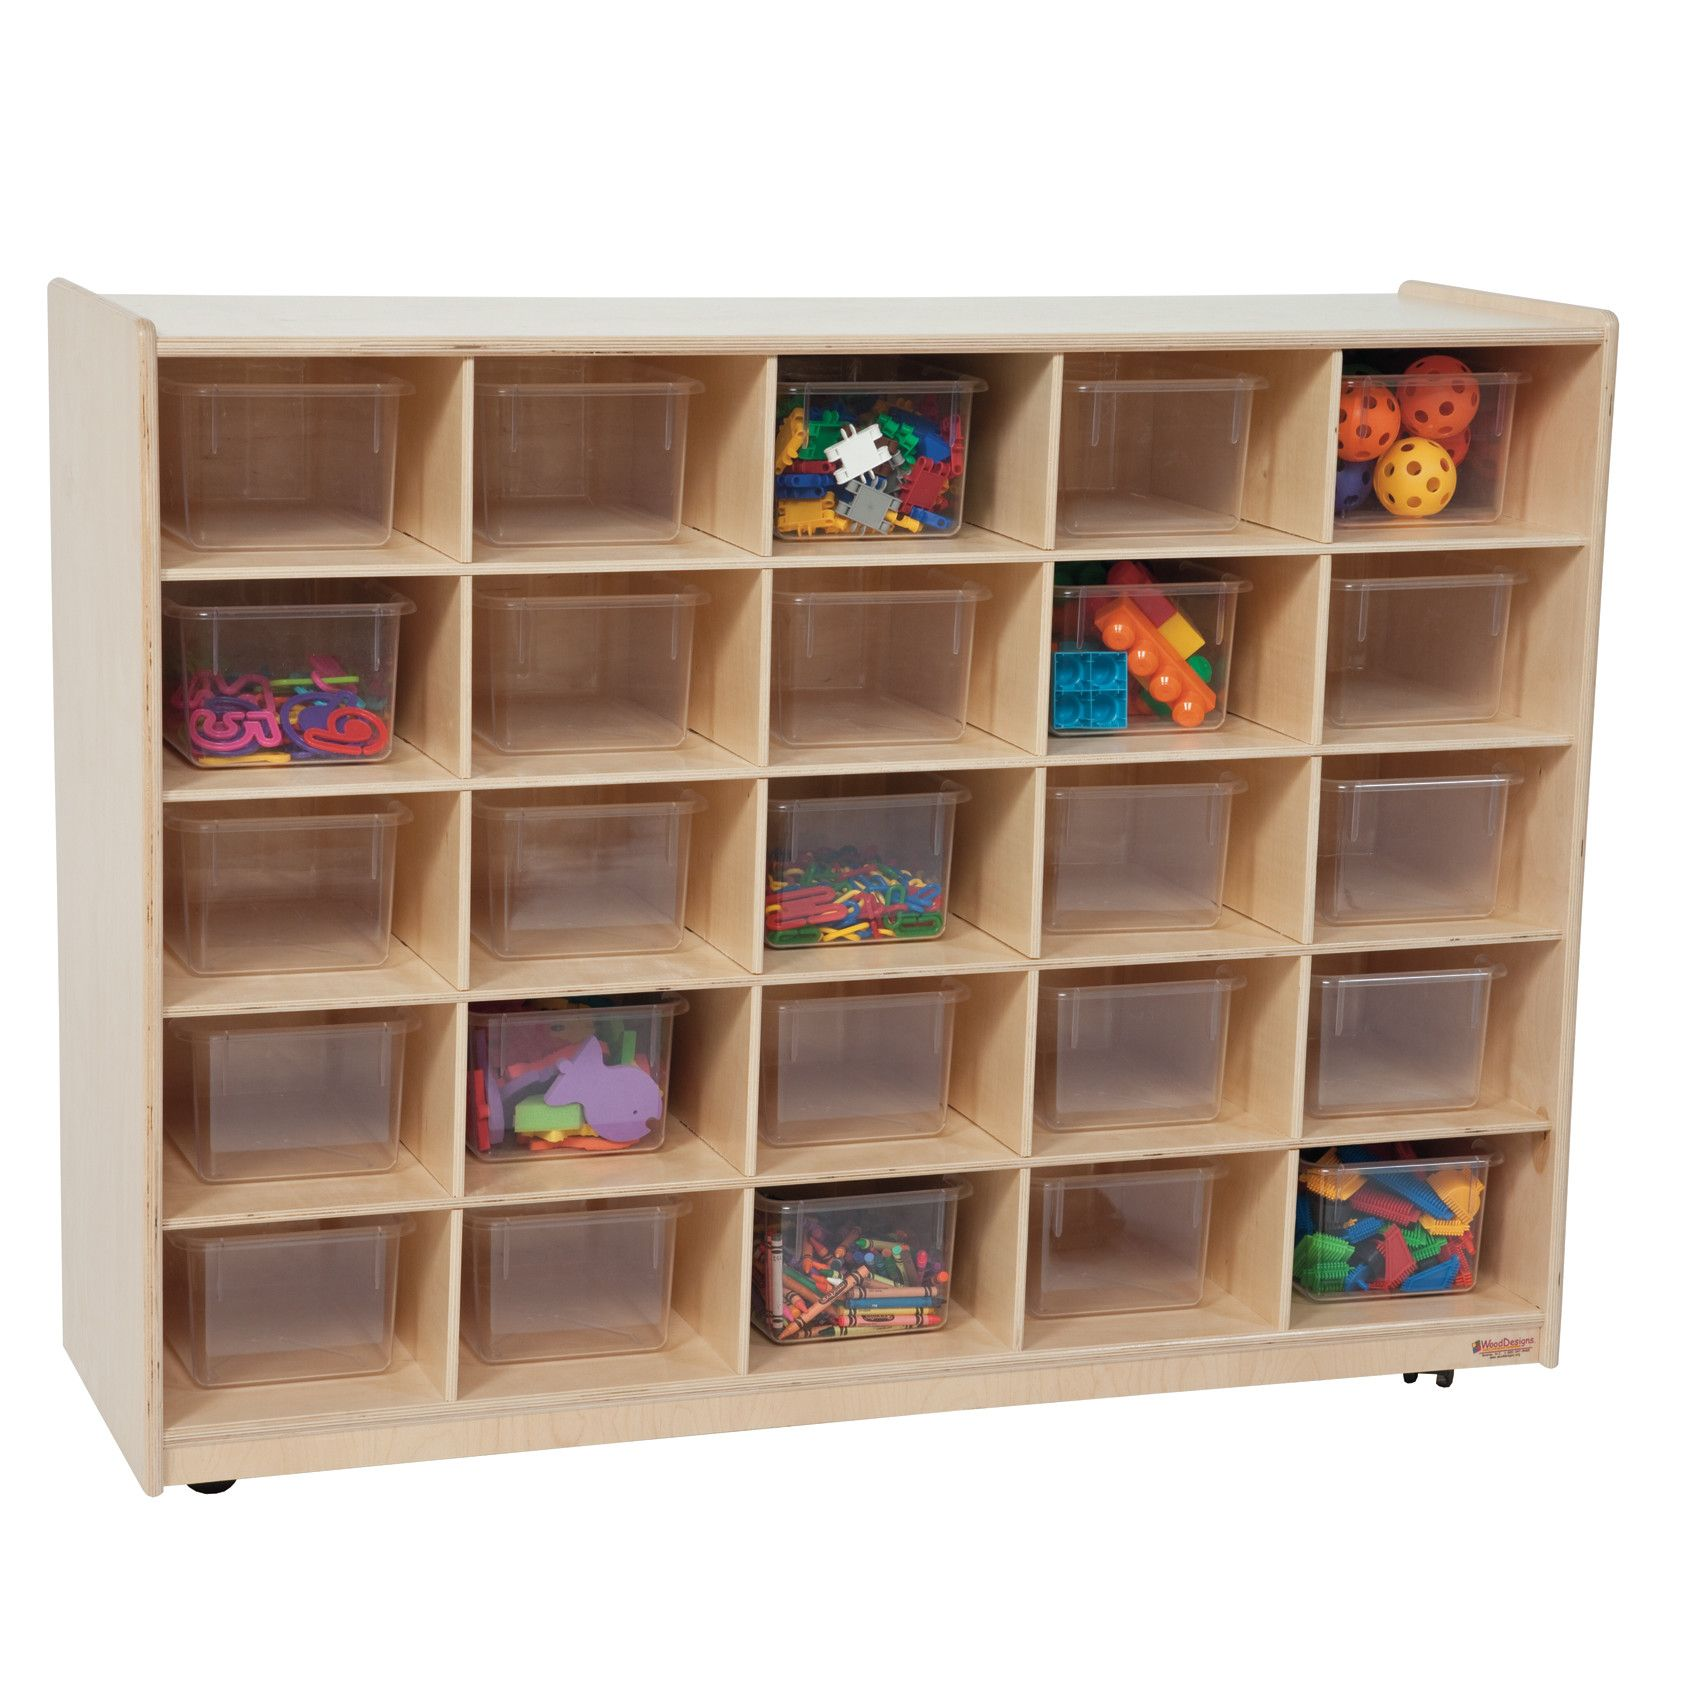 Tray Storage Unit 25 partment Cubby ZAPATERA